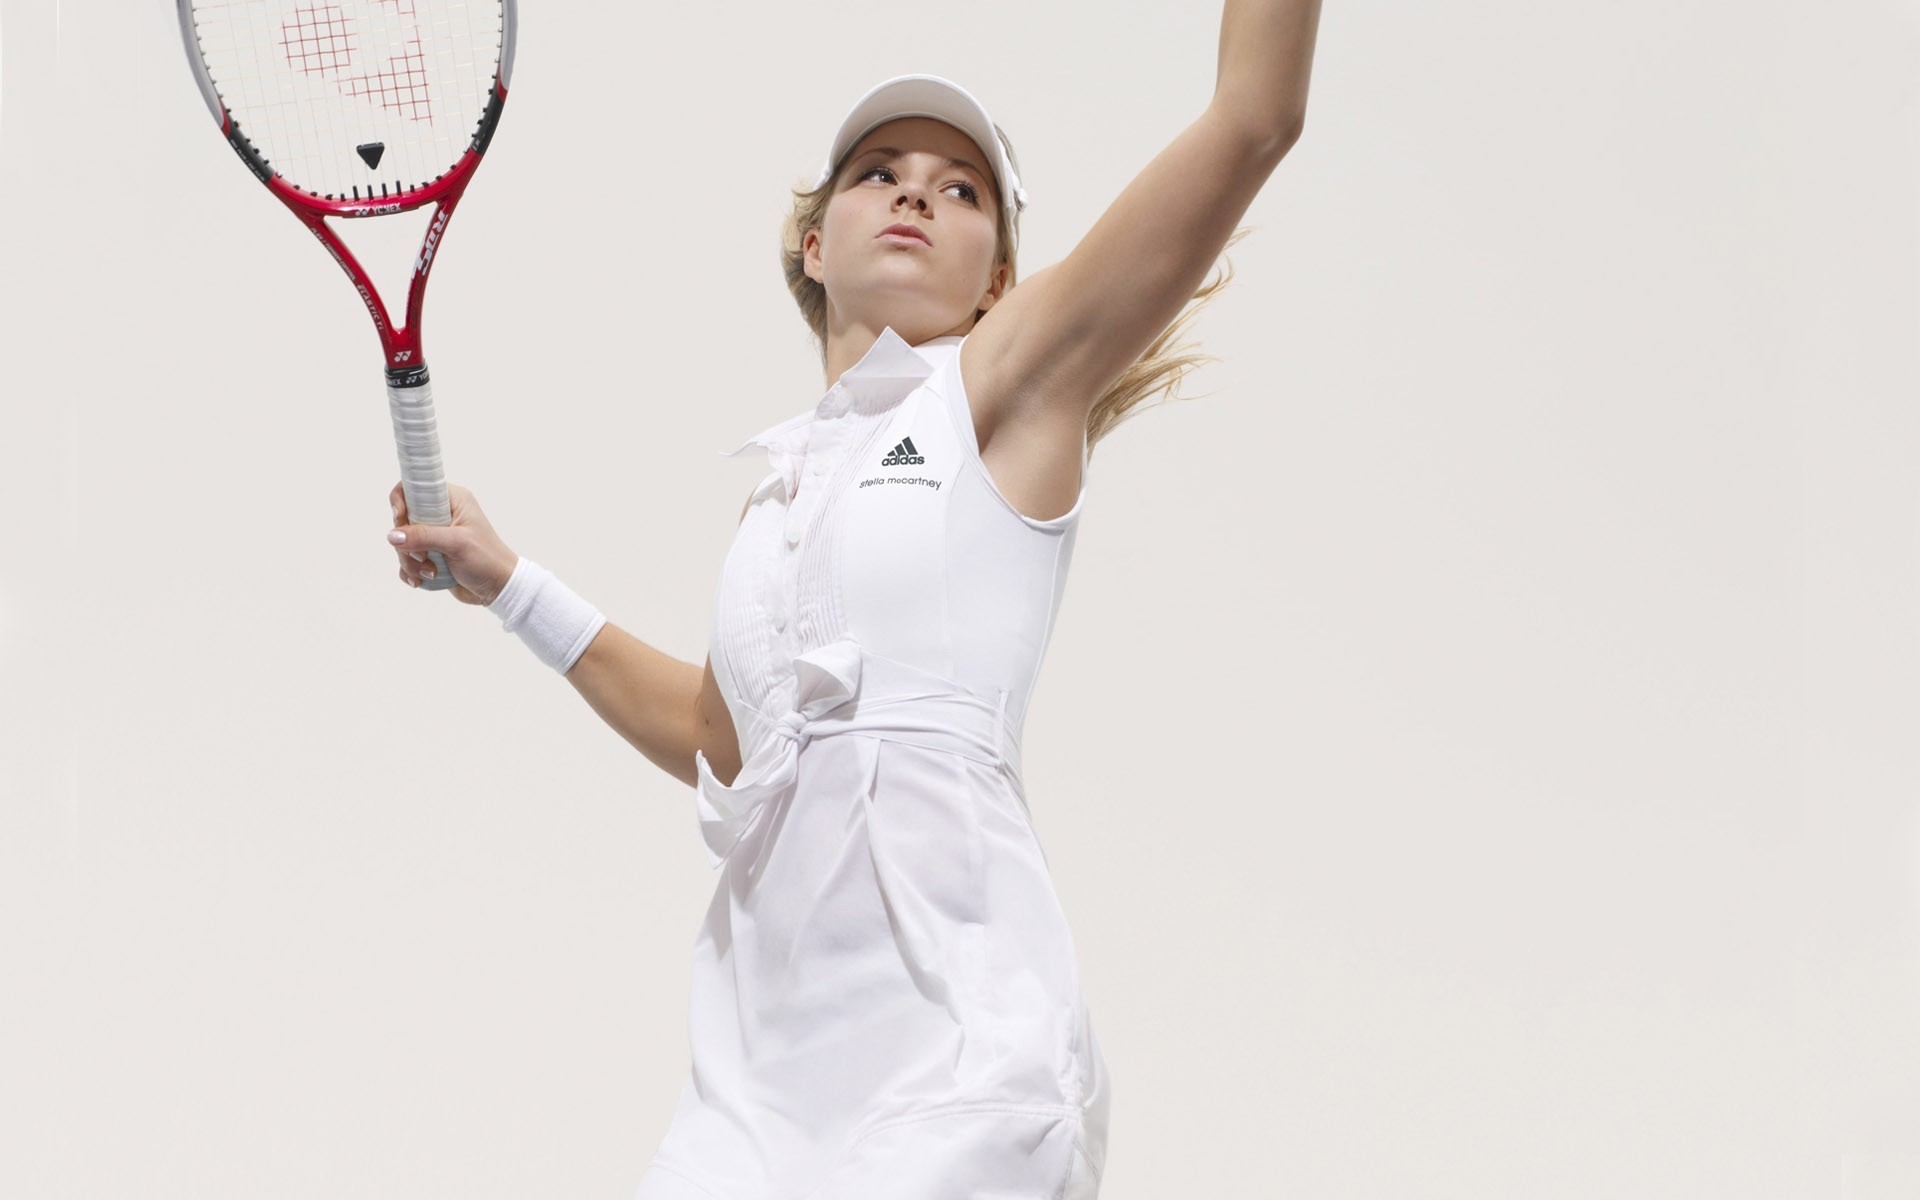 Sport Girl Wallpaper Hd: Cute Maria Kirilenko (Tennis Player) Wallpapers